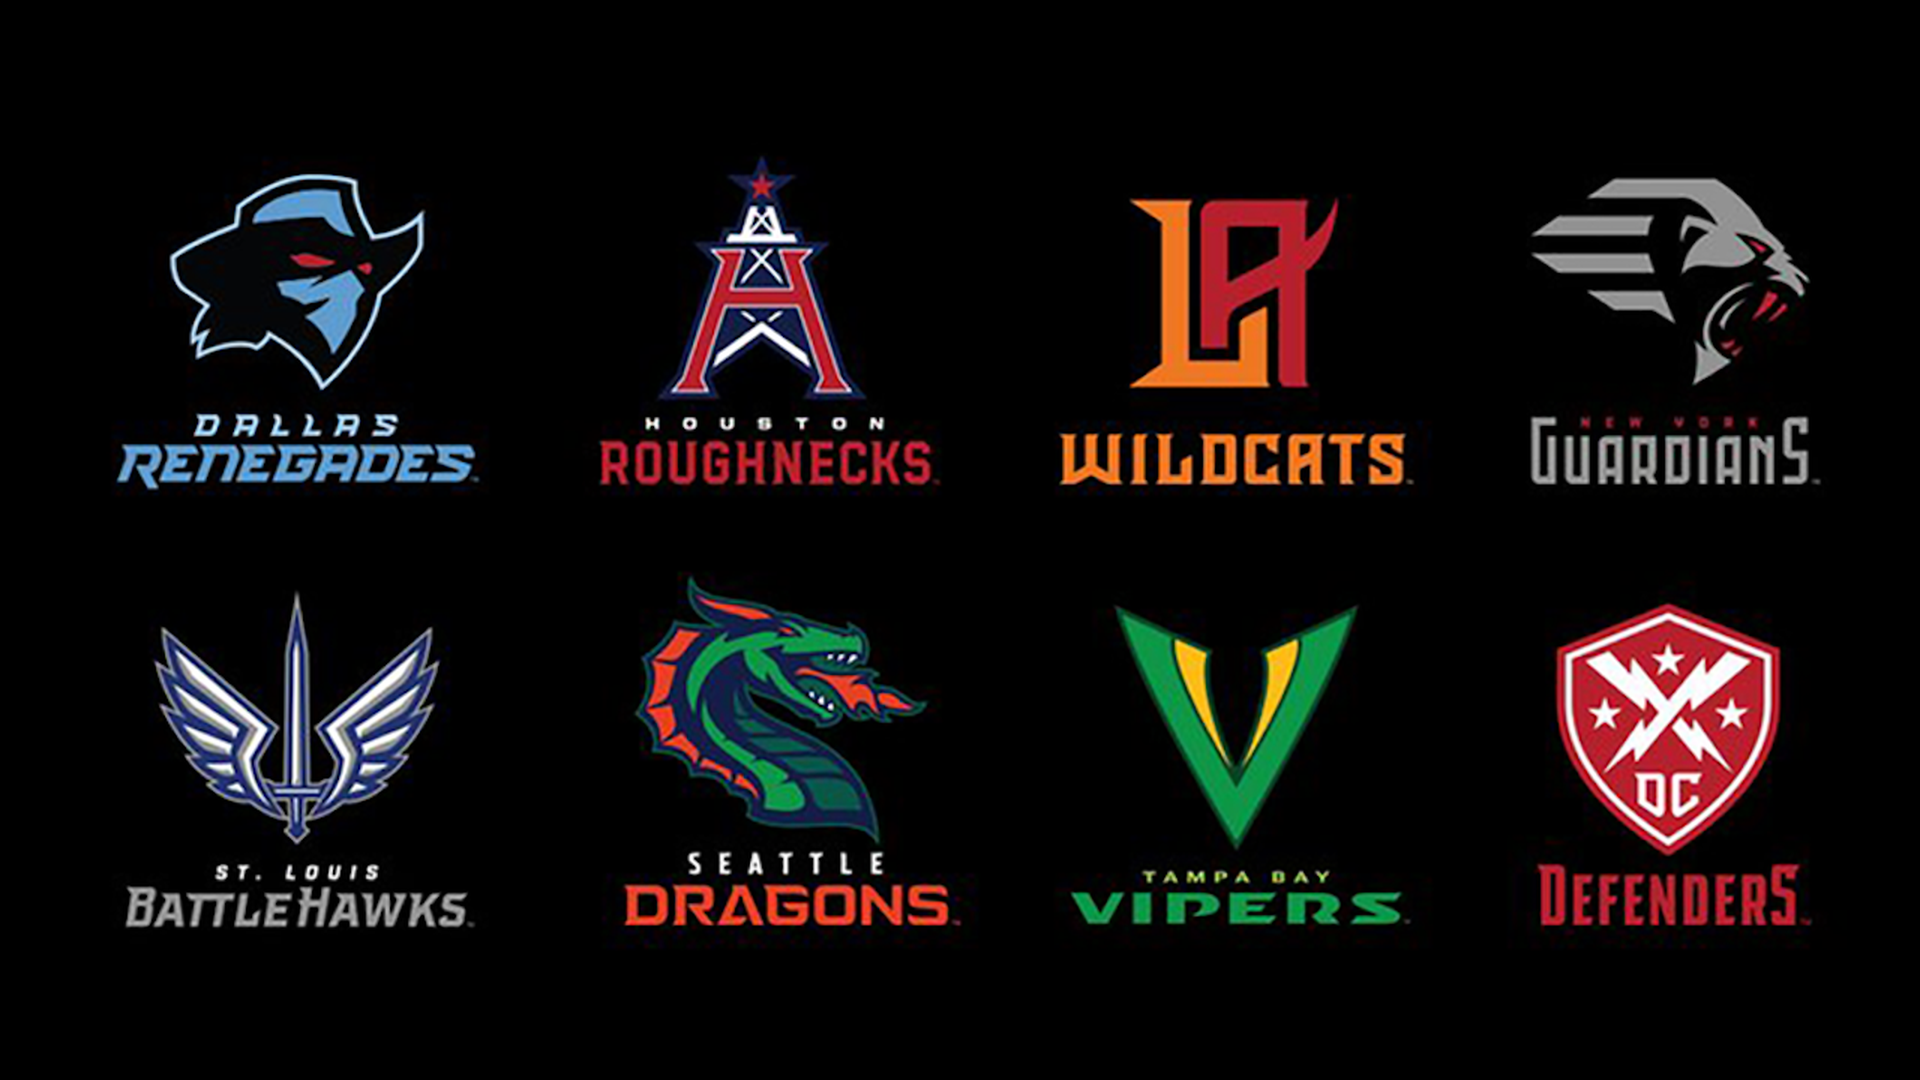 XFL 2.0 unveils teams and logos